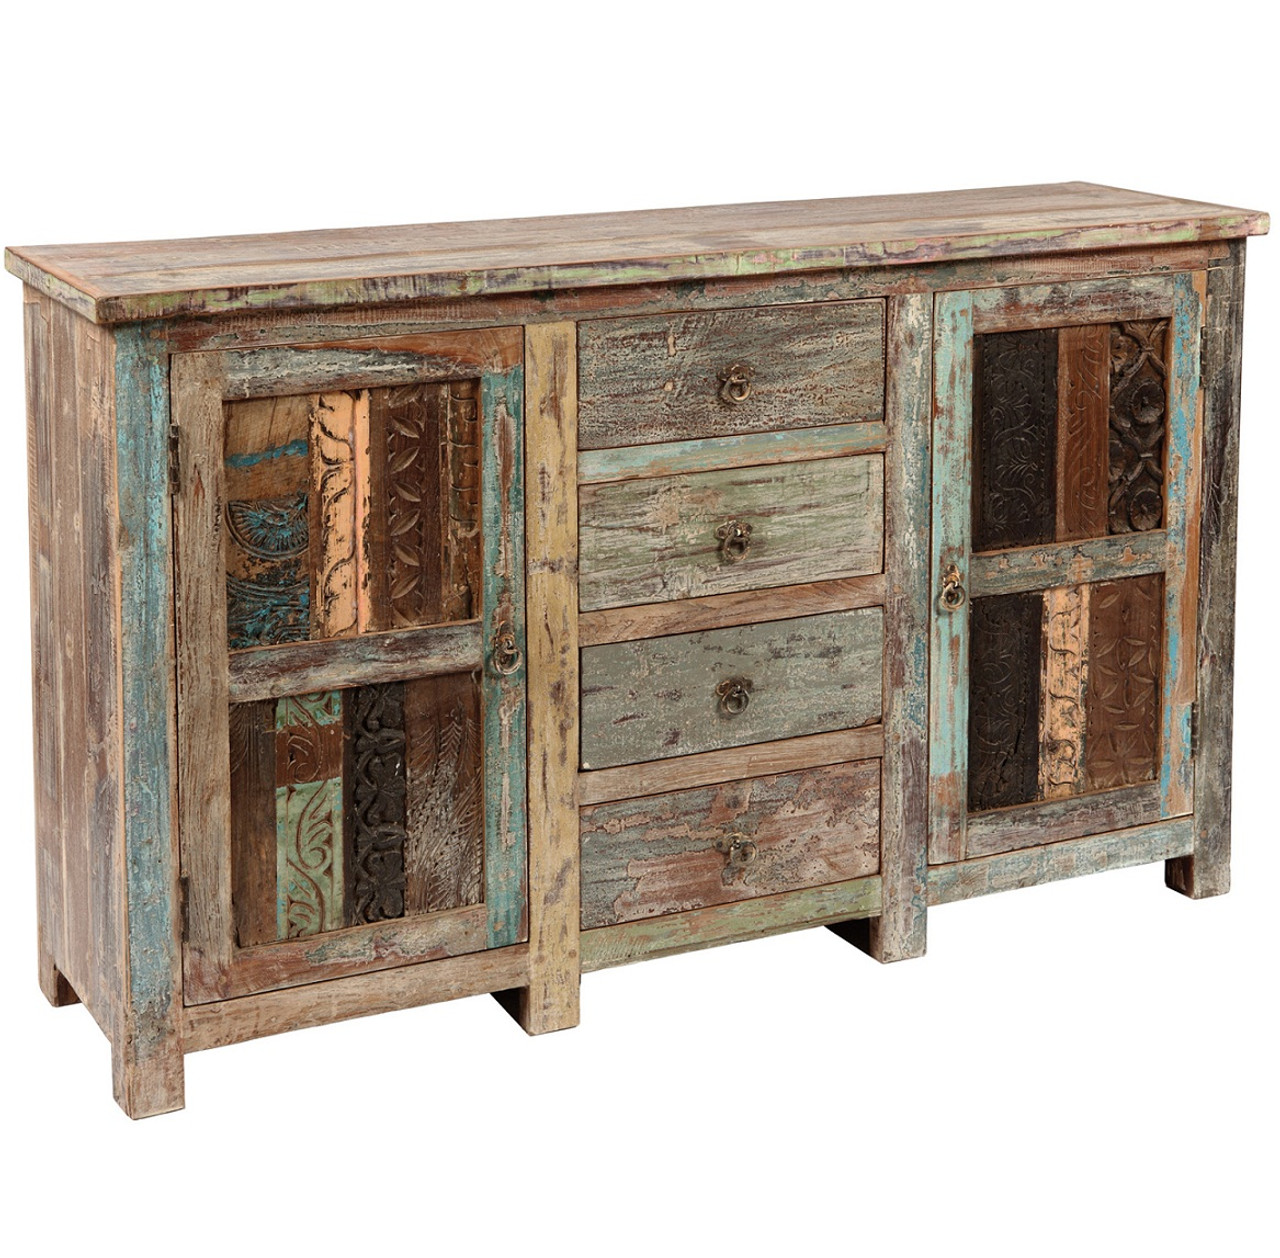 shabby chic vintage 4 door sideboard zin home. Black Bedroom Furniture Sets. Home Design Ideas